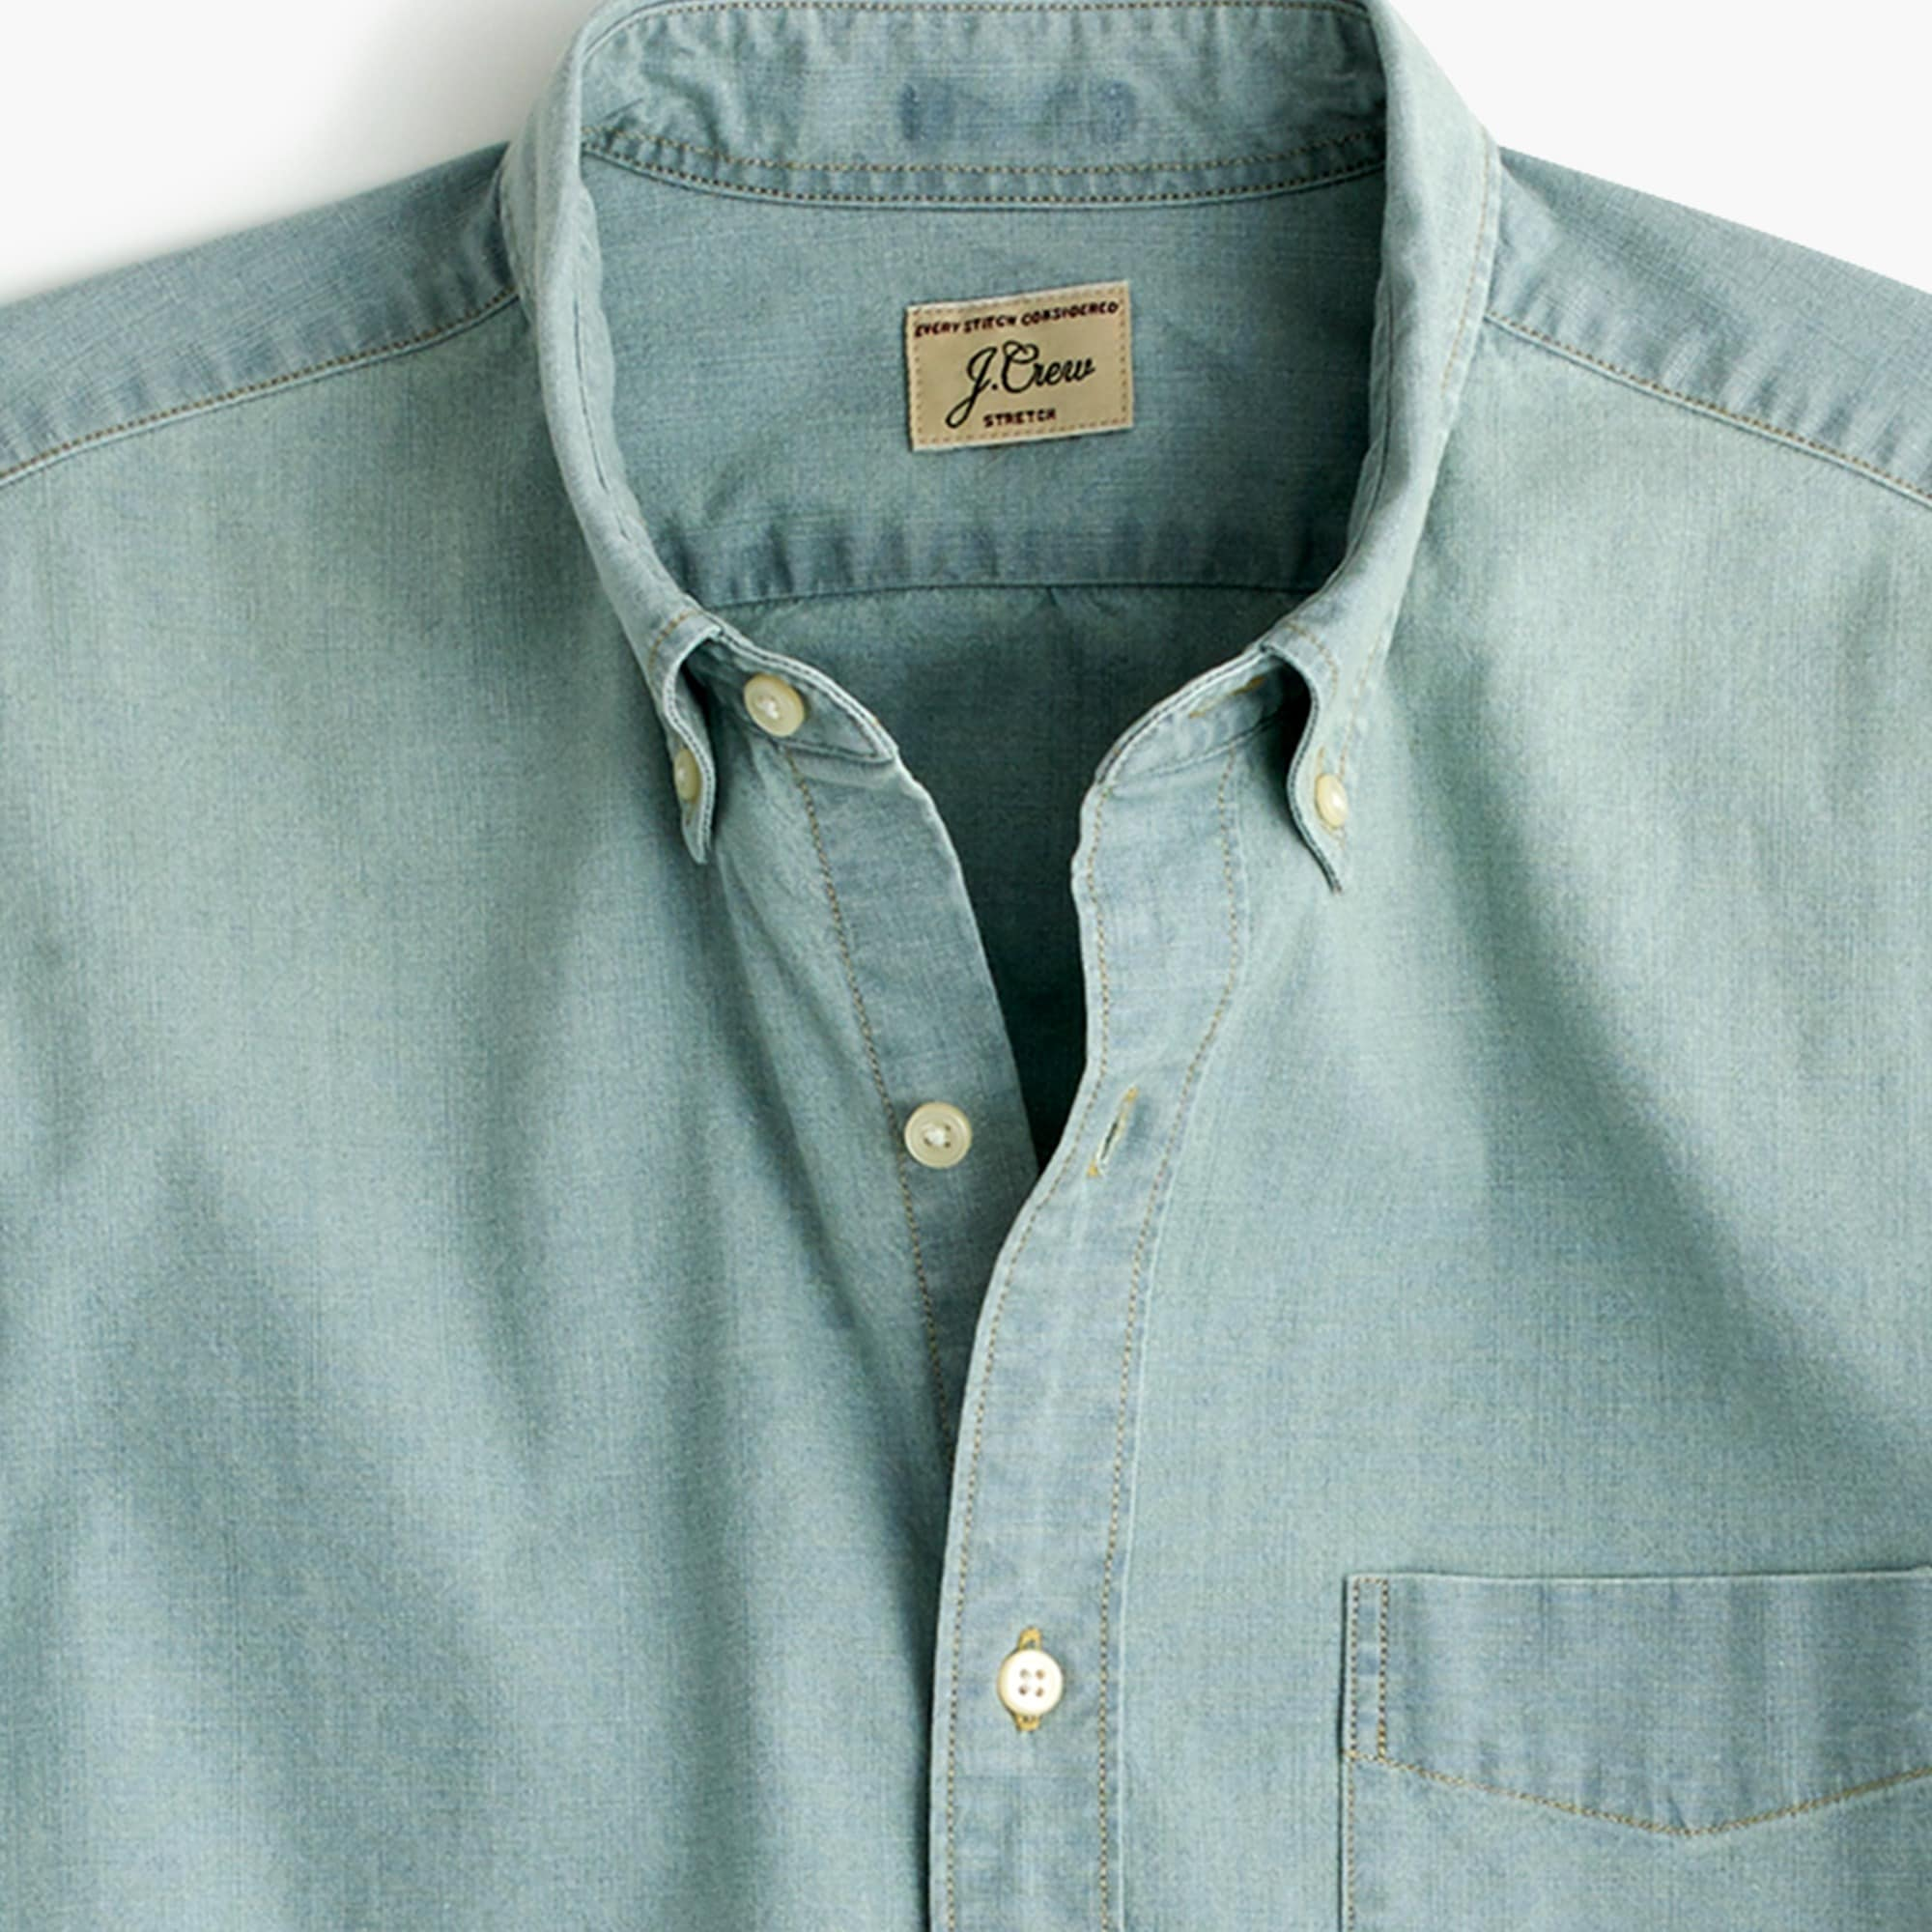 Image 3 for Tall stretch short-sleeve shirt in light wash chambray